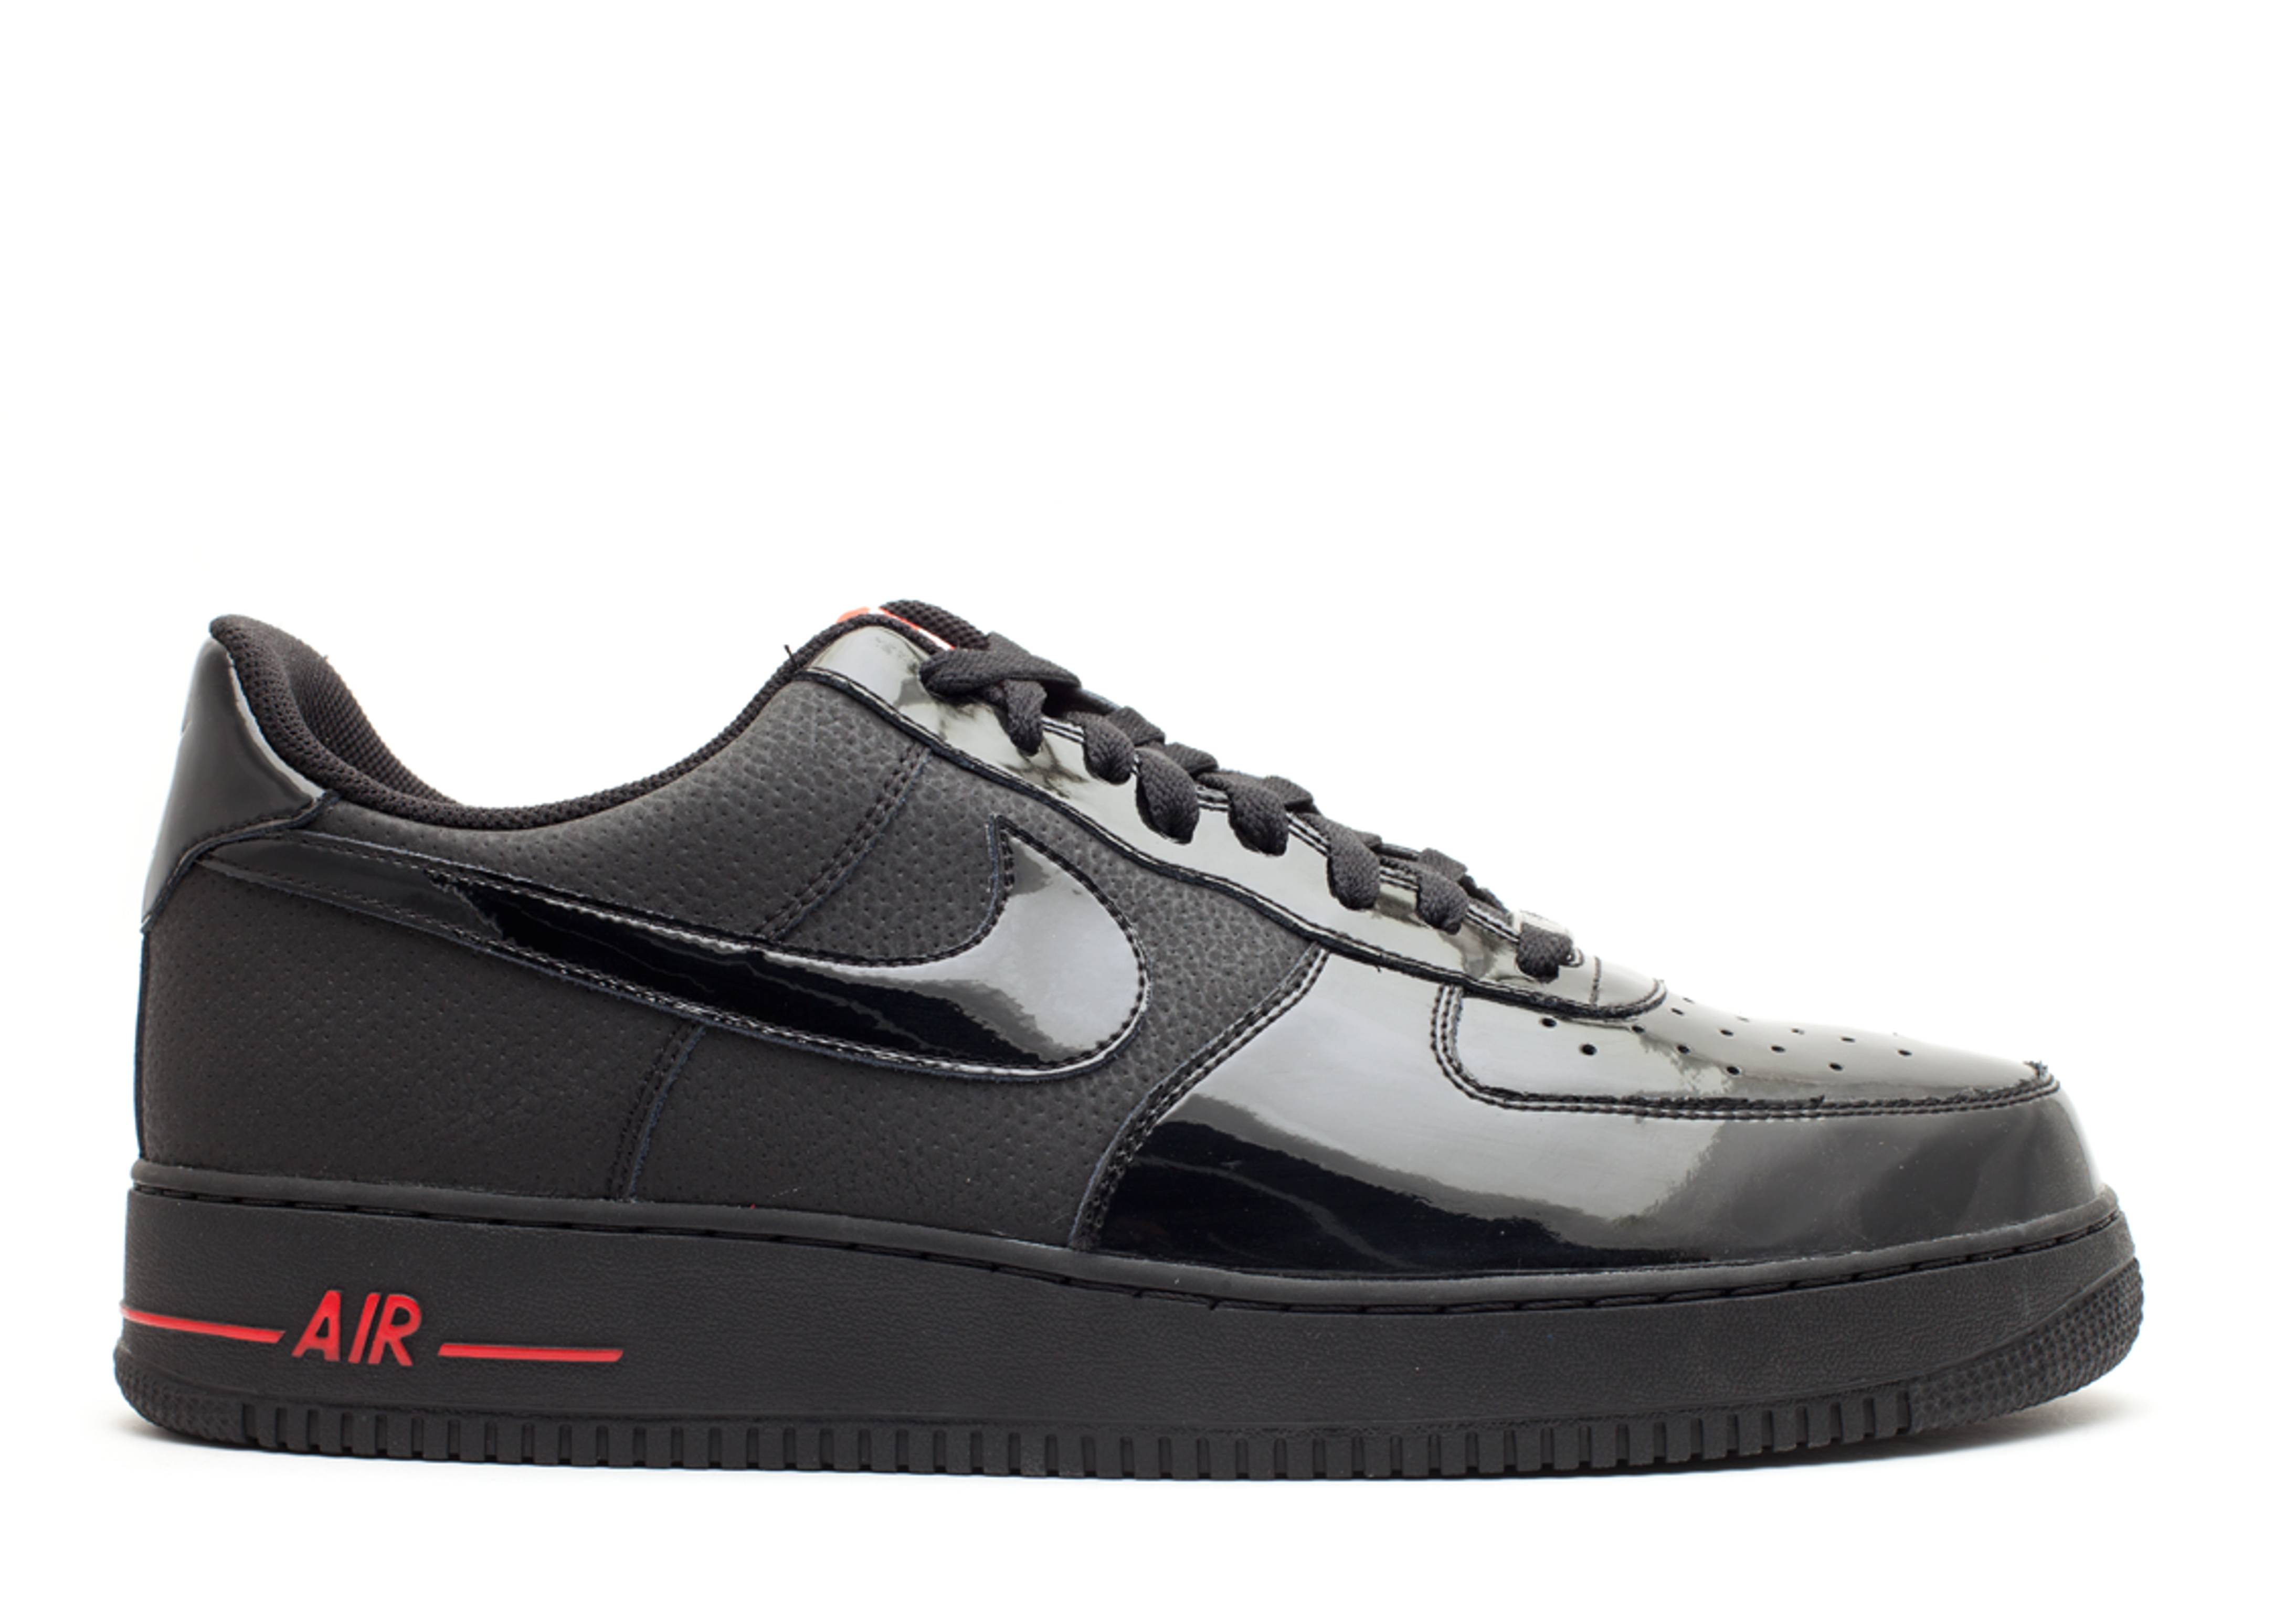 Nike Air Force 1 07 Black White Red Sport Size 11.5